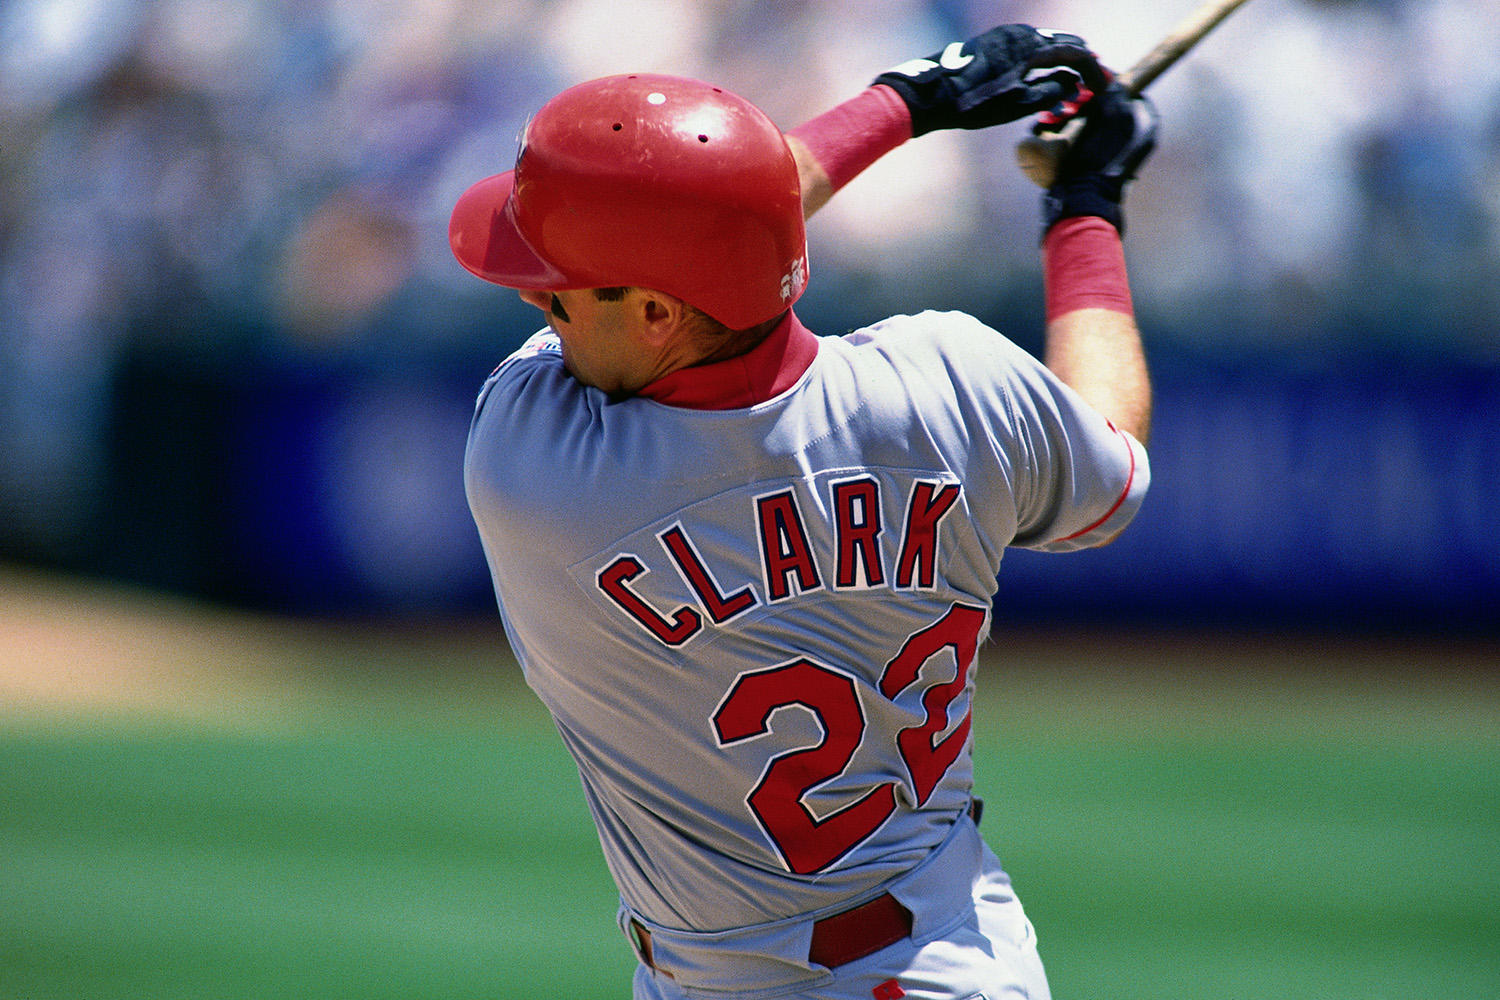 In five years with Texas, Clark hit .308 and earned his sixth All-Star Game selection. (Brad Mangin / National Baseball Hall of Fame)